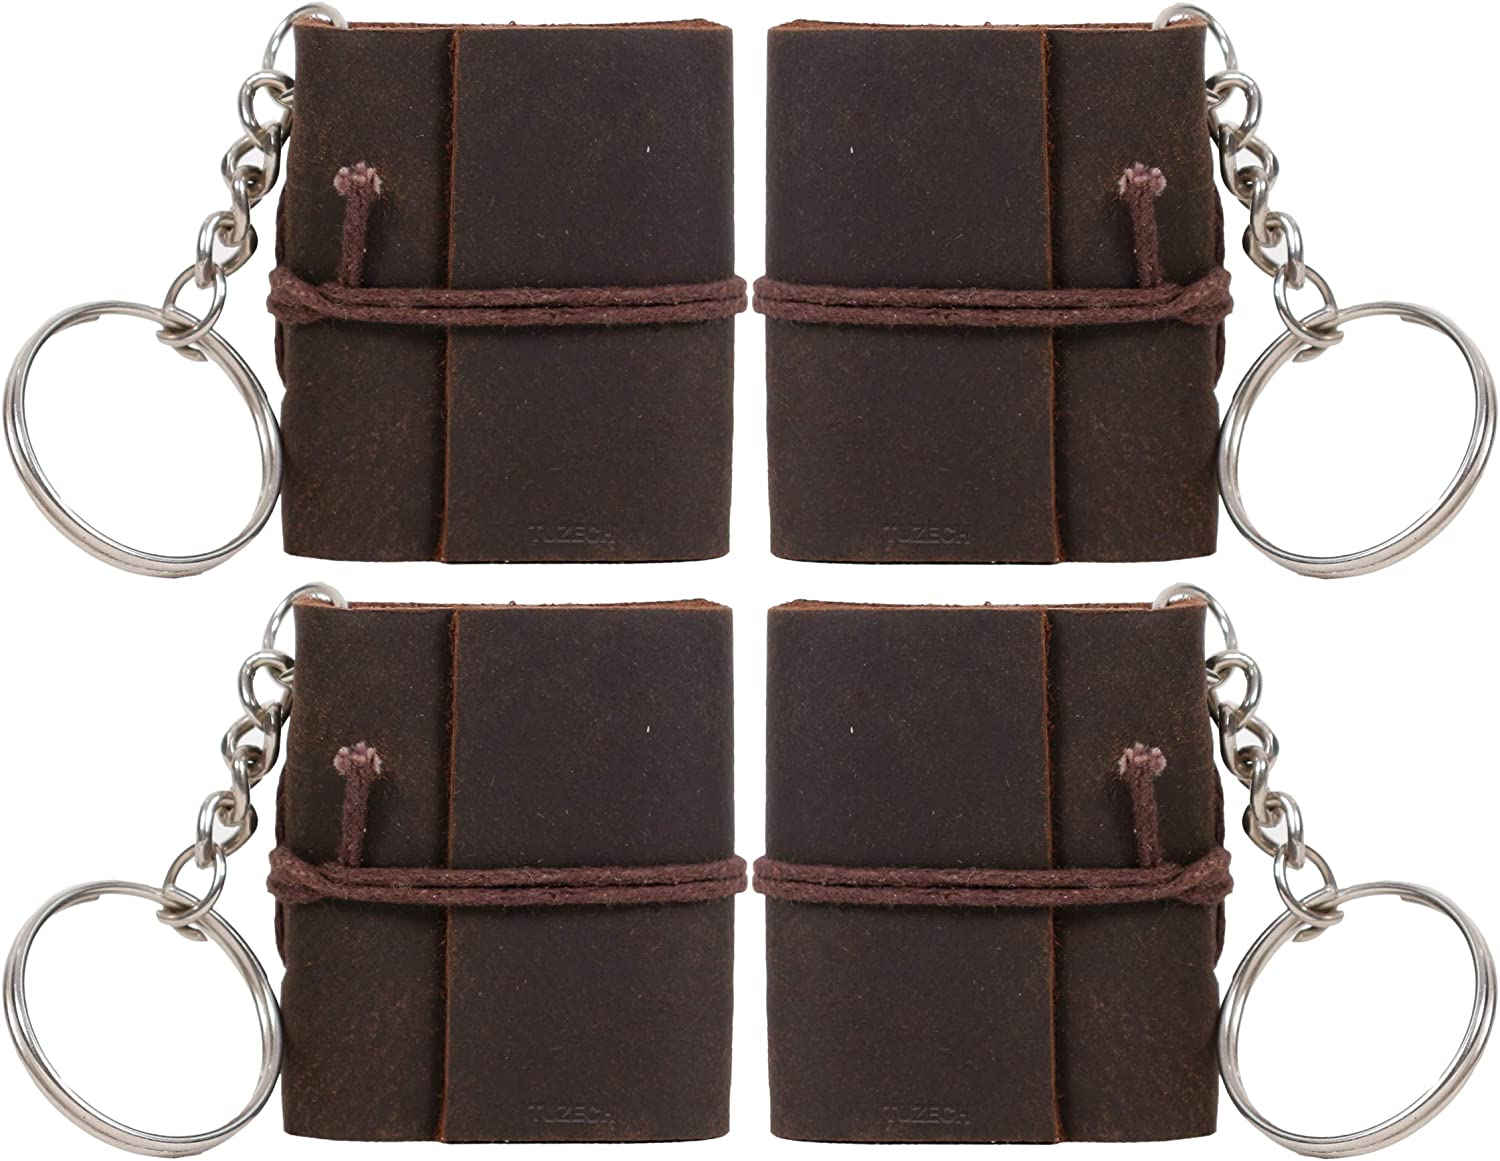 TUZECH Handmade Leather Mini Key Chain Diary Notebook Blank Unlined Diary for Office  Artist   Architect  Restaurants Vintage Journal for Men and Women - 2 Inches (Dark Brown) (Set of 4)